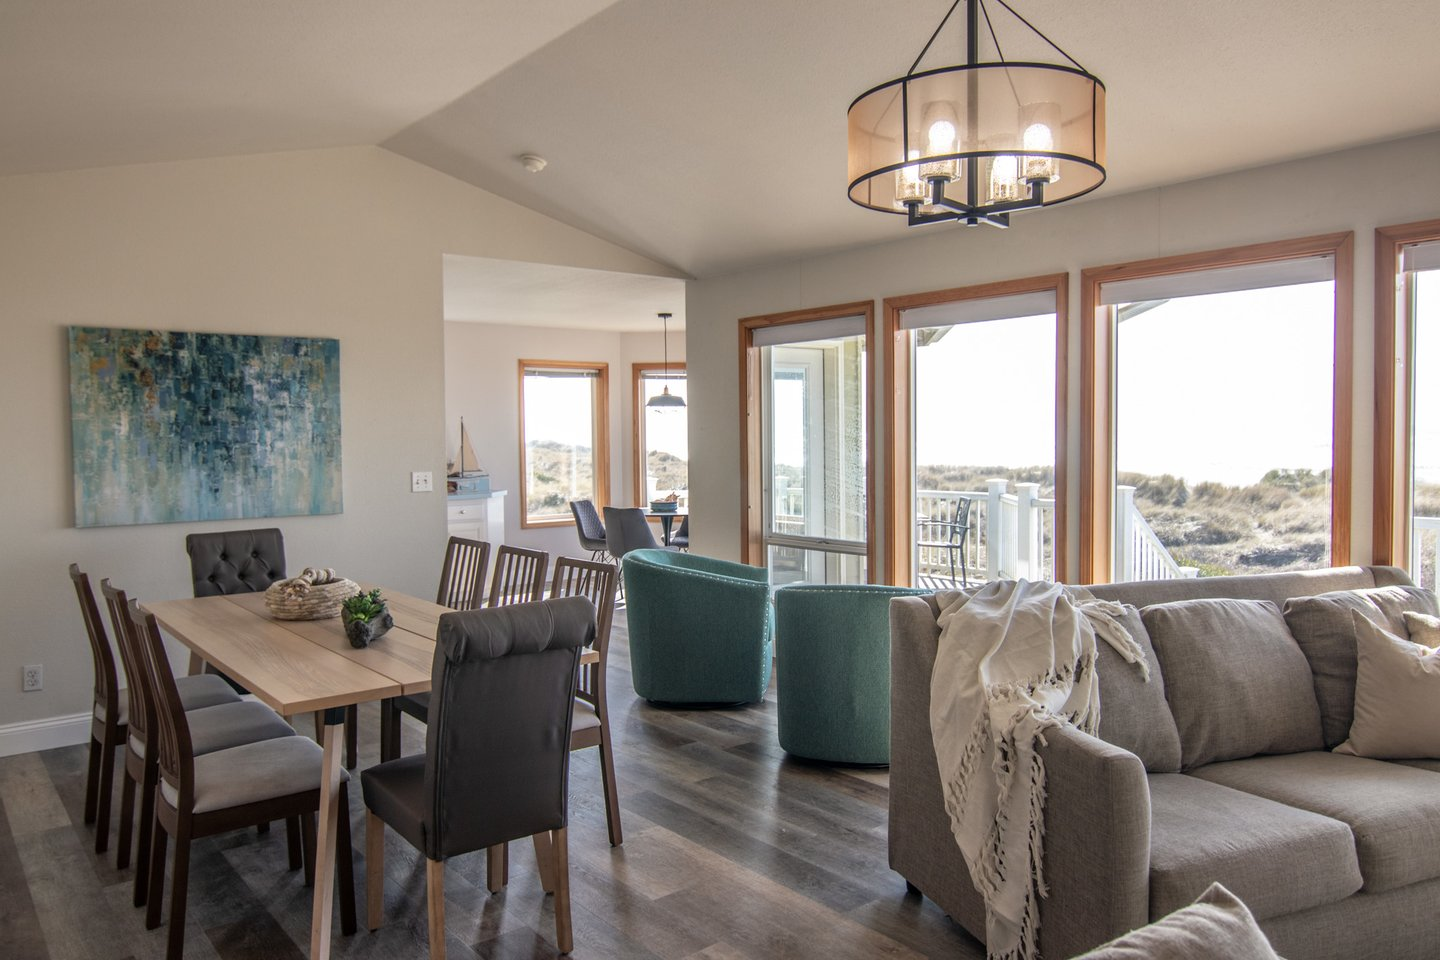 The open floorplan is perfect for the whole family to spend time together.